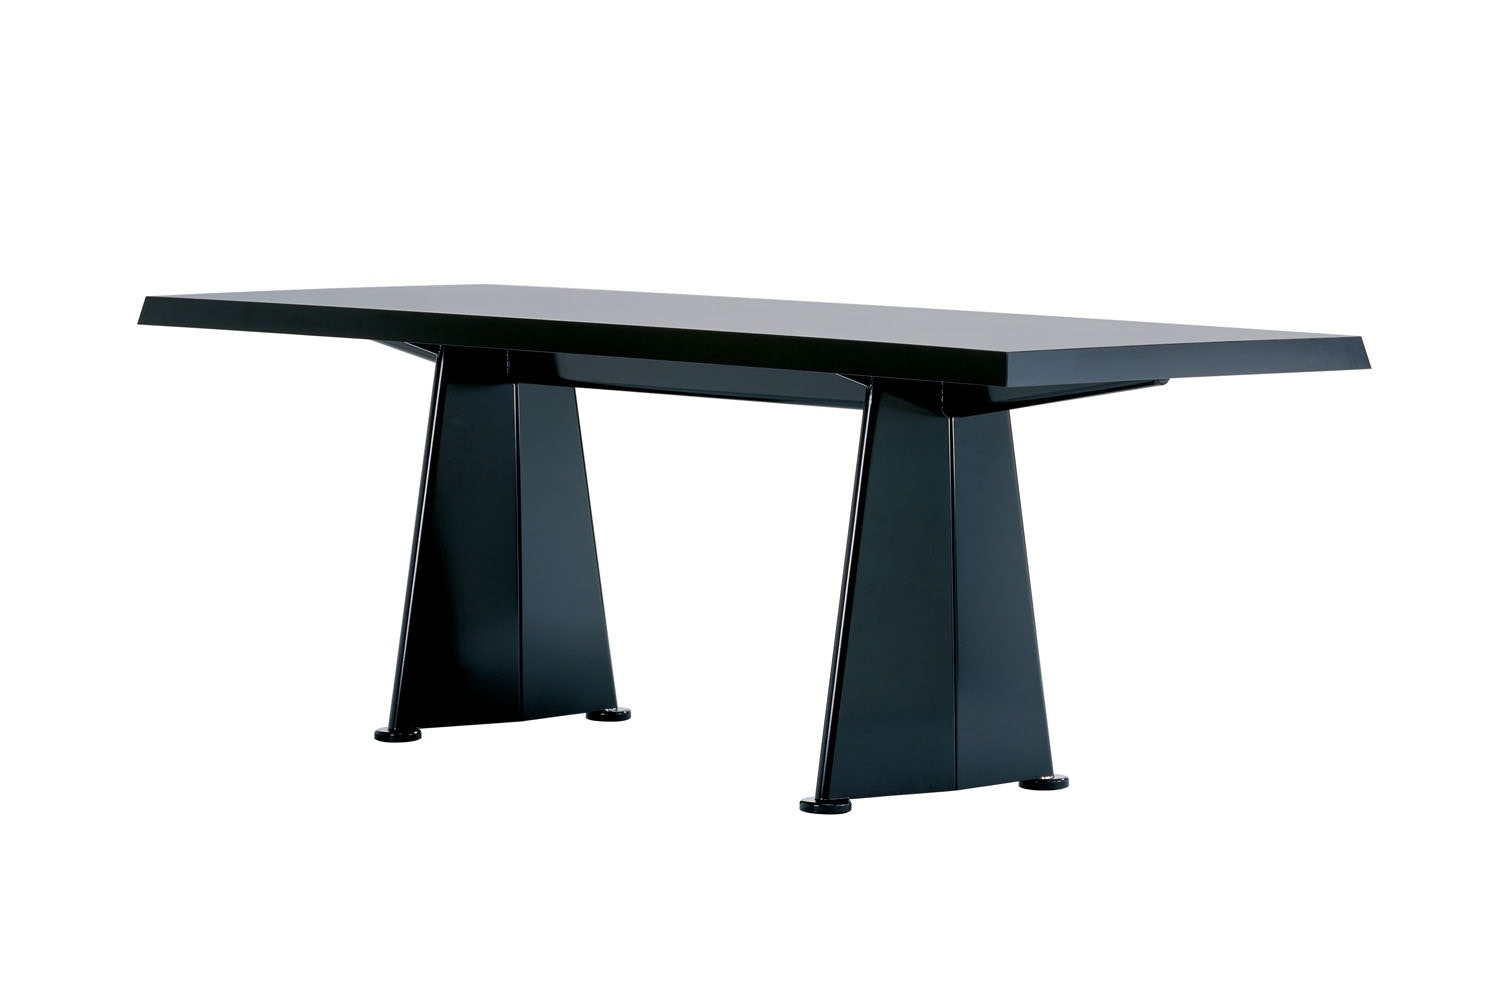 Trapeze Table by Jean Prouve for Vitra